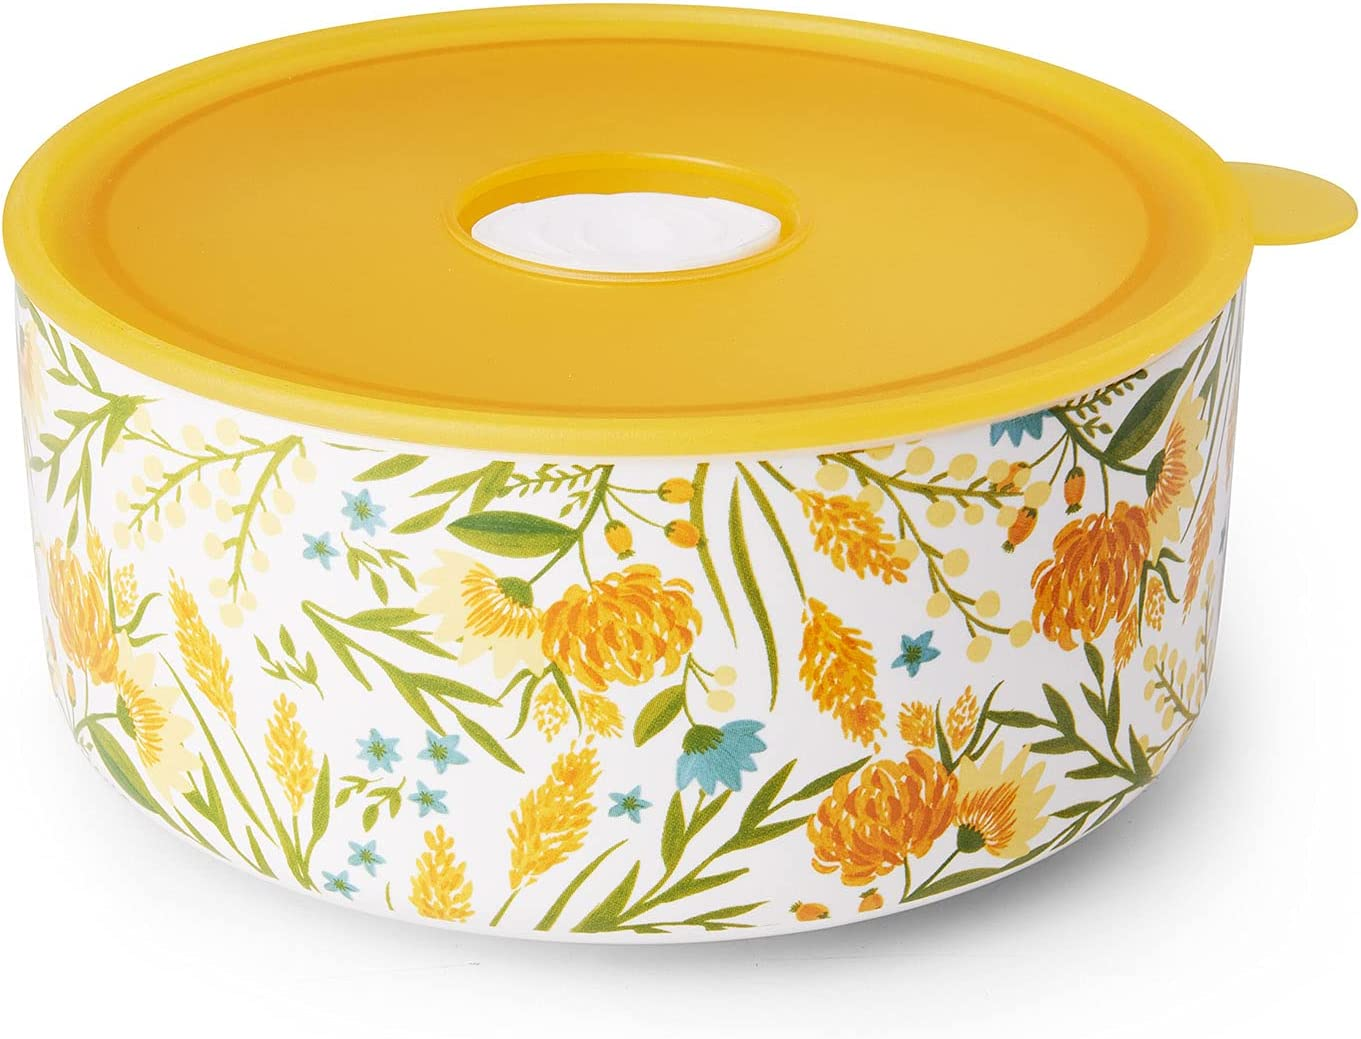 Ceramic Bowl with Lid | 25oz Serving Bowl with Lid for Cereal or Salad | Porcelain Food Storage Container with Lid, Microwave & Dishwasher Safe (Yellow)